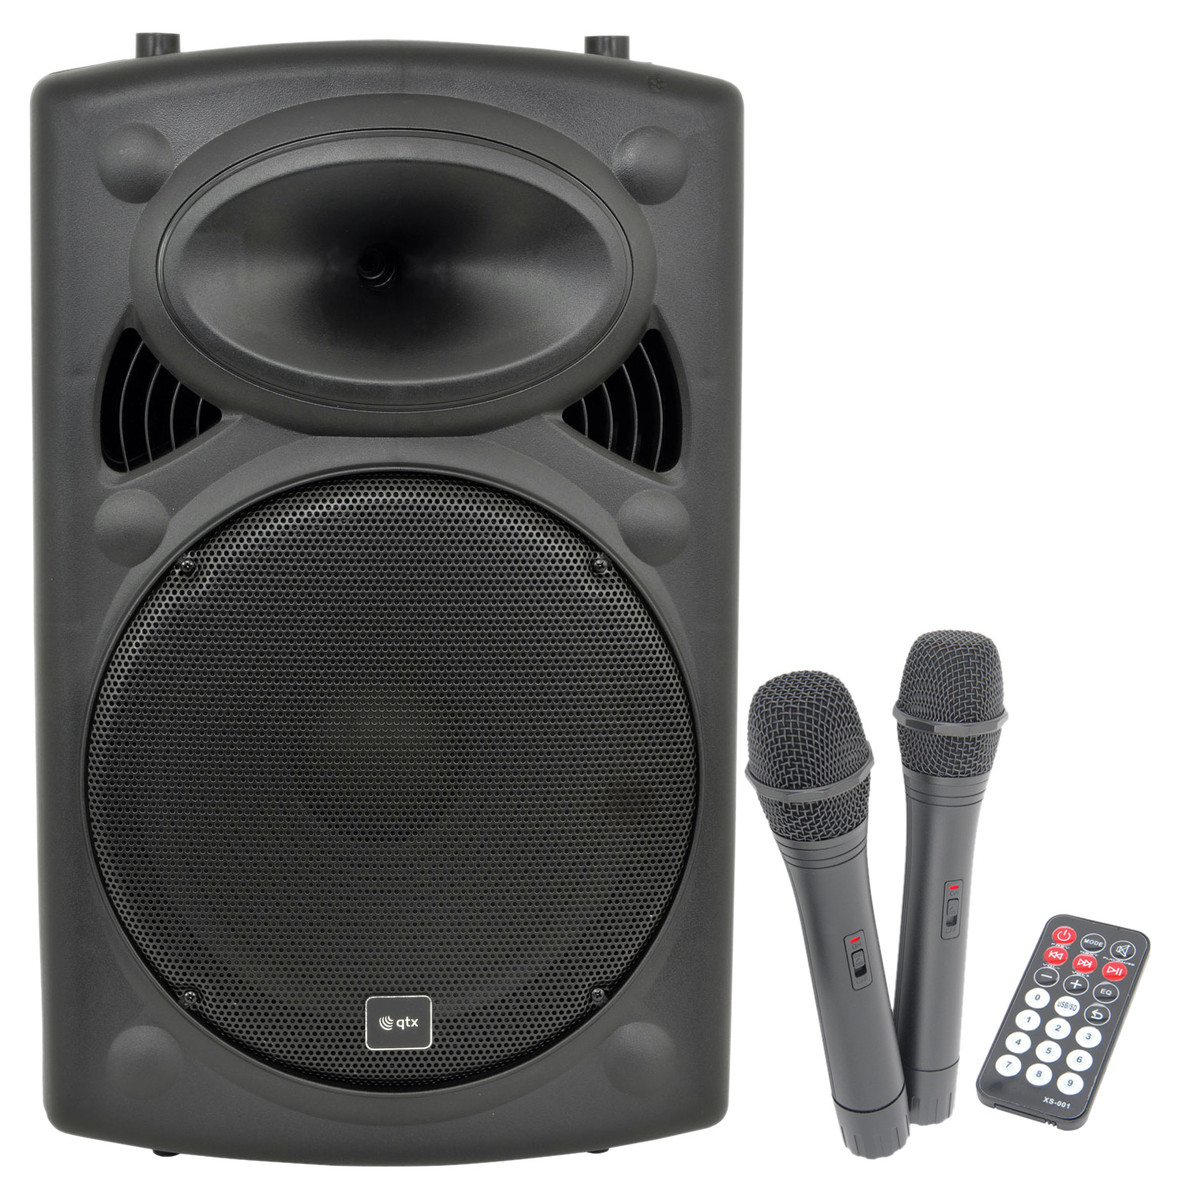 Portable Pa System With Wireless Speakers Wire Center Hi Fi Tone Control Circuit C1815 8211 C945 Qtx Qr15pa Mics At Gear4music Com Rh Sound